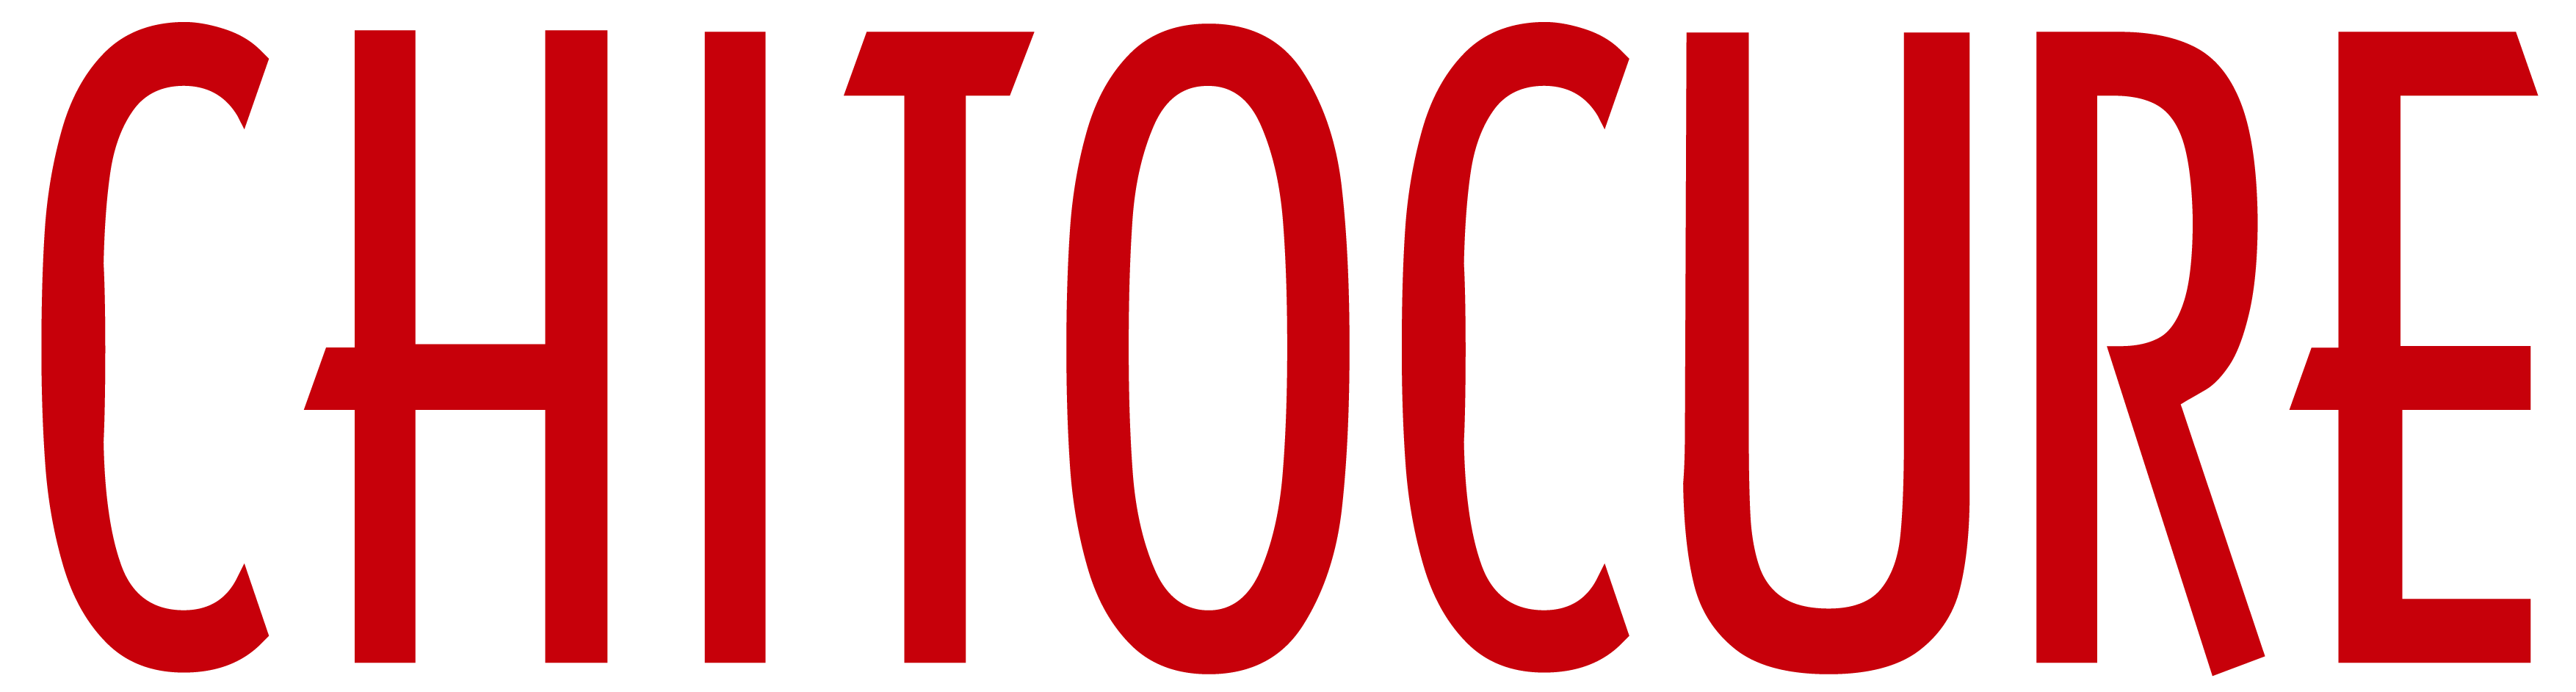 Chitocure Logo.png